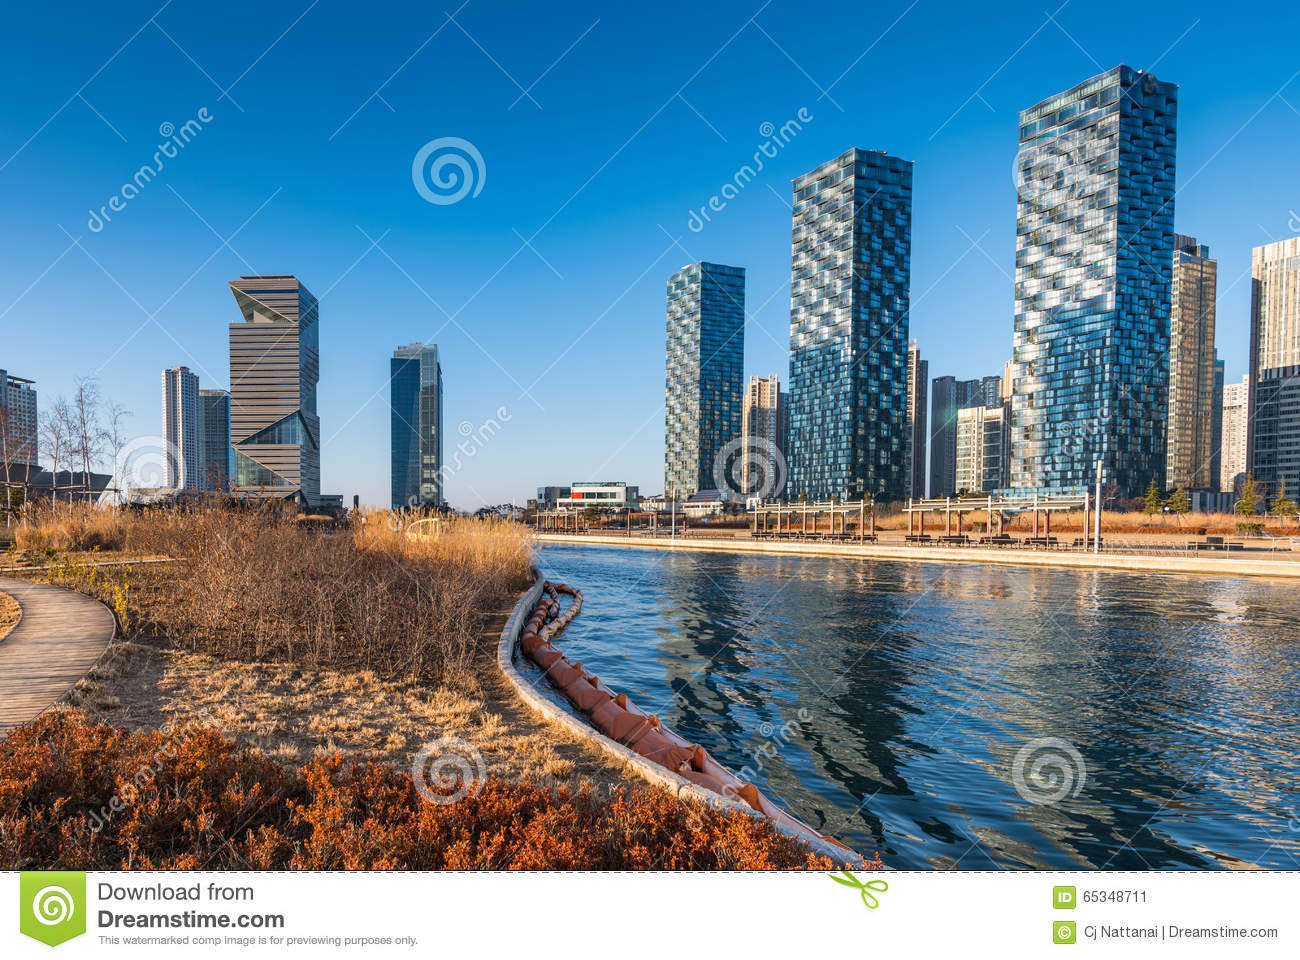 Songdo Stock Photos, Images, & Pictures.